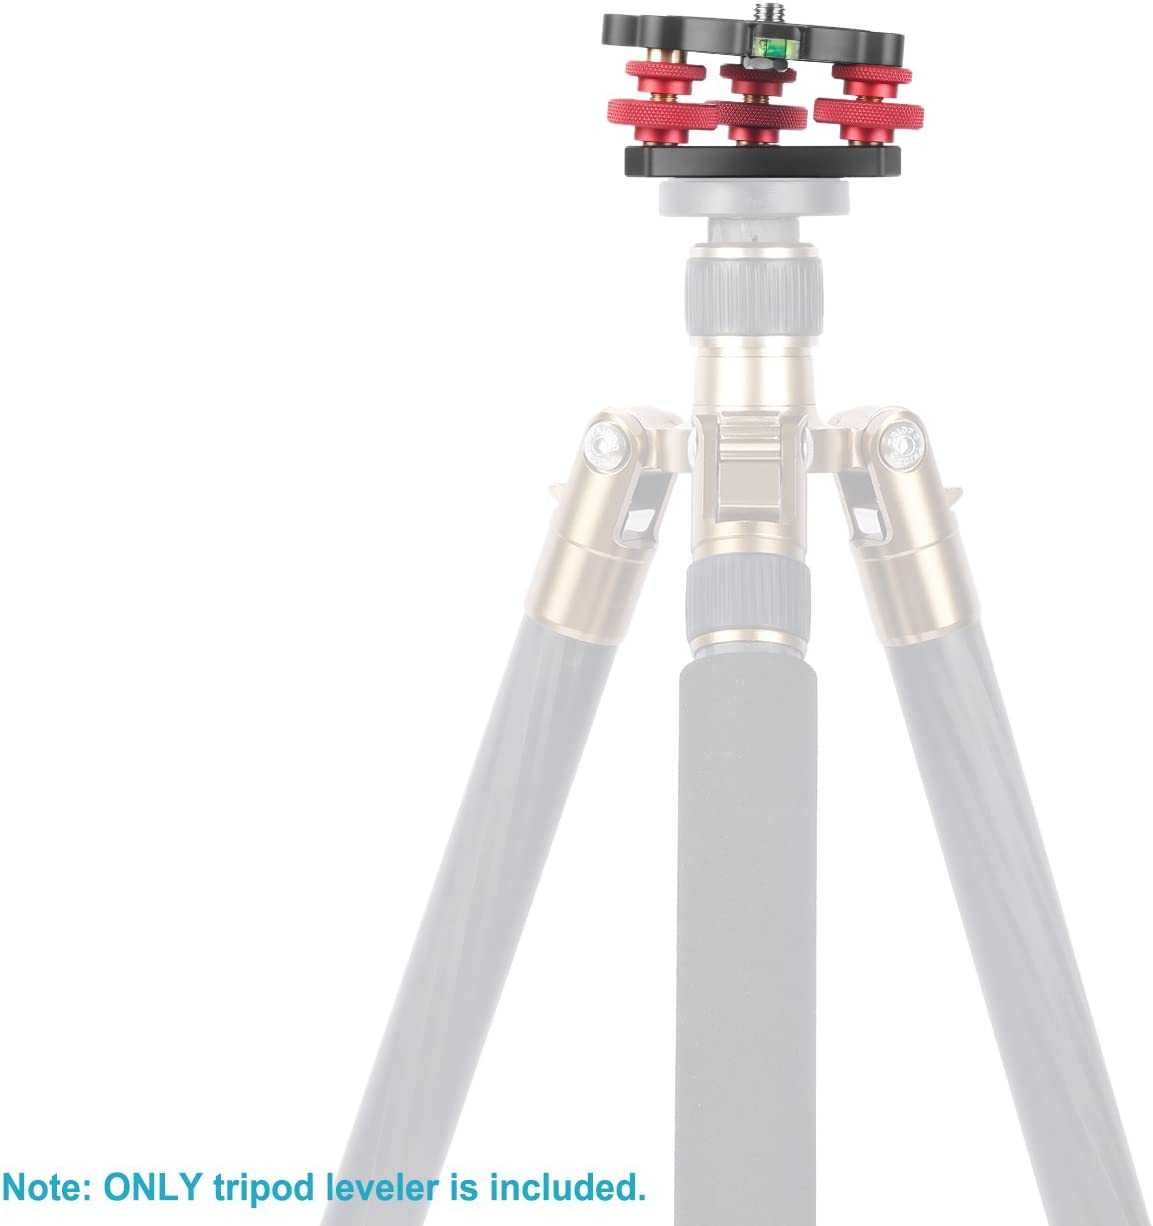 //-5 Degree Precision Adjustment Neewer Photography Tripod Leveler Tri-Wheel Leveling Base with Bubble Level and 3//8 inch Screw 3 Dials with Aluminum Alloy Construction